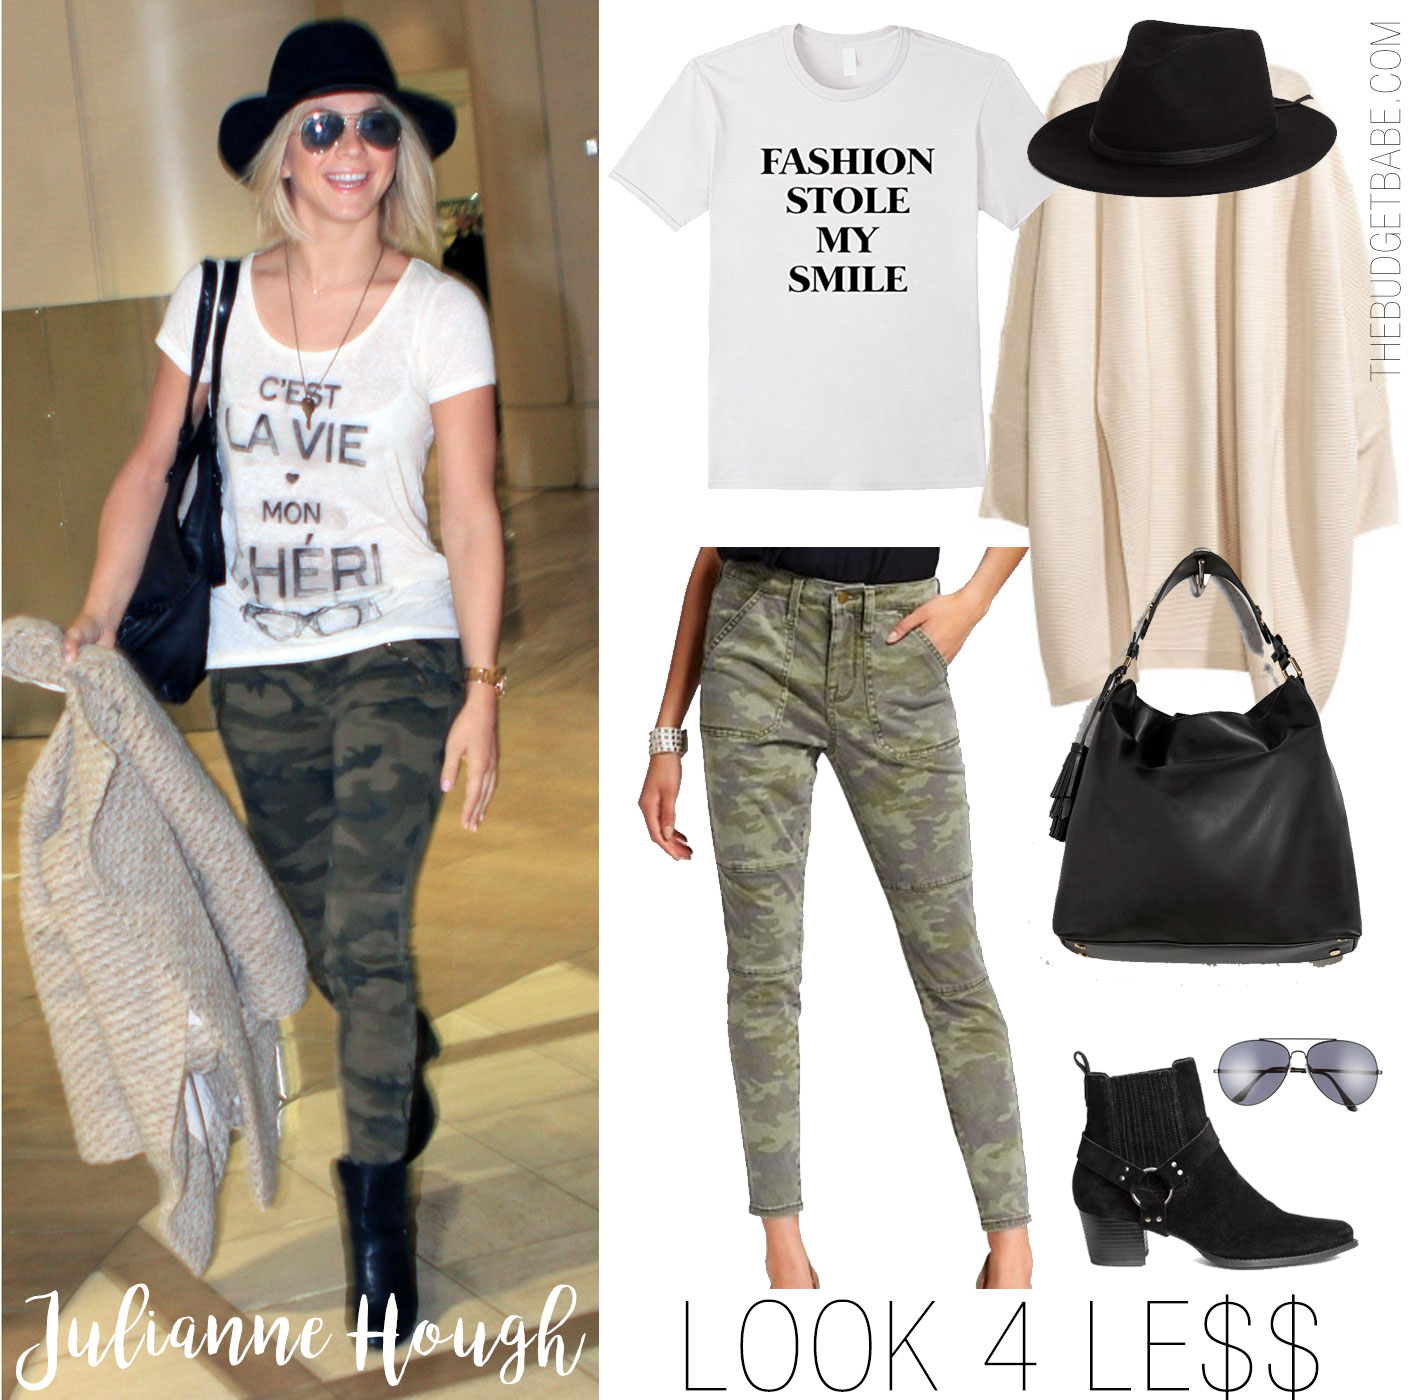 Julianne Hough's camo pants and graphic tee look for less is a cute and casual look to try.